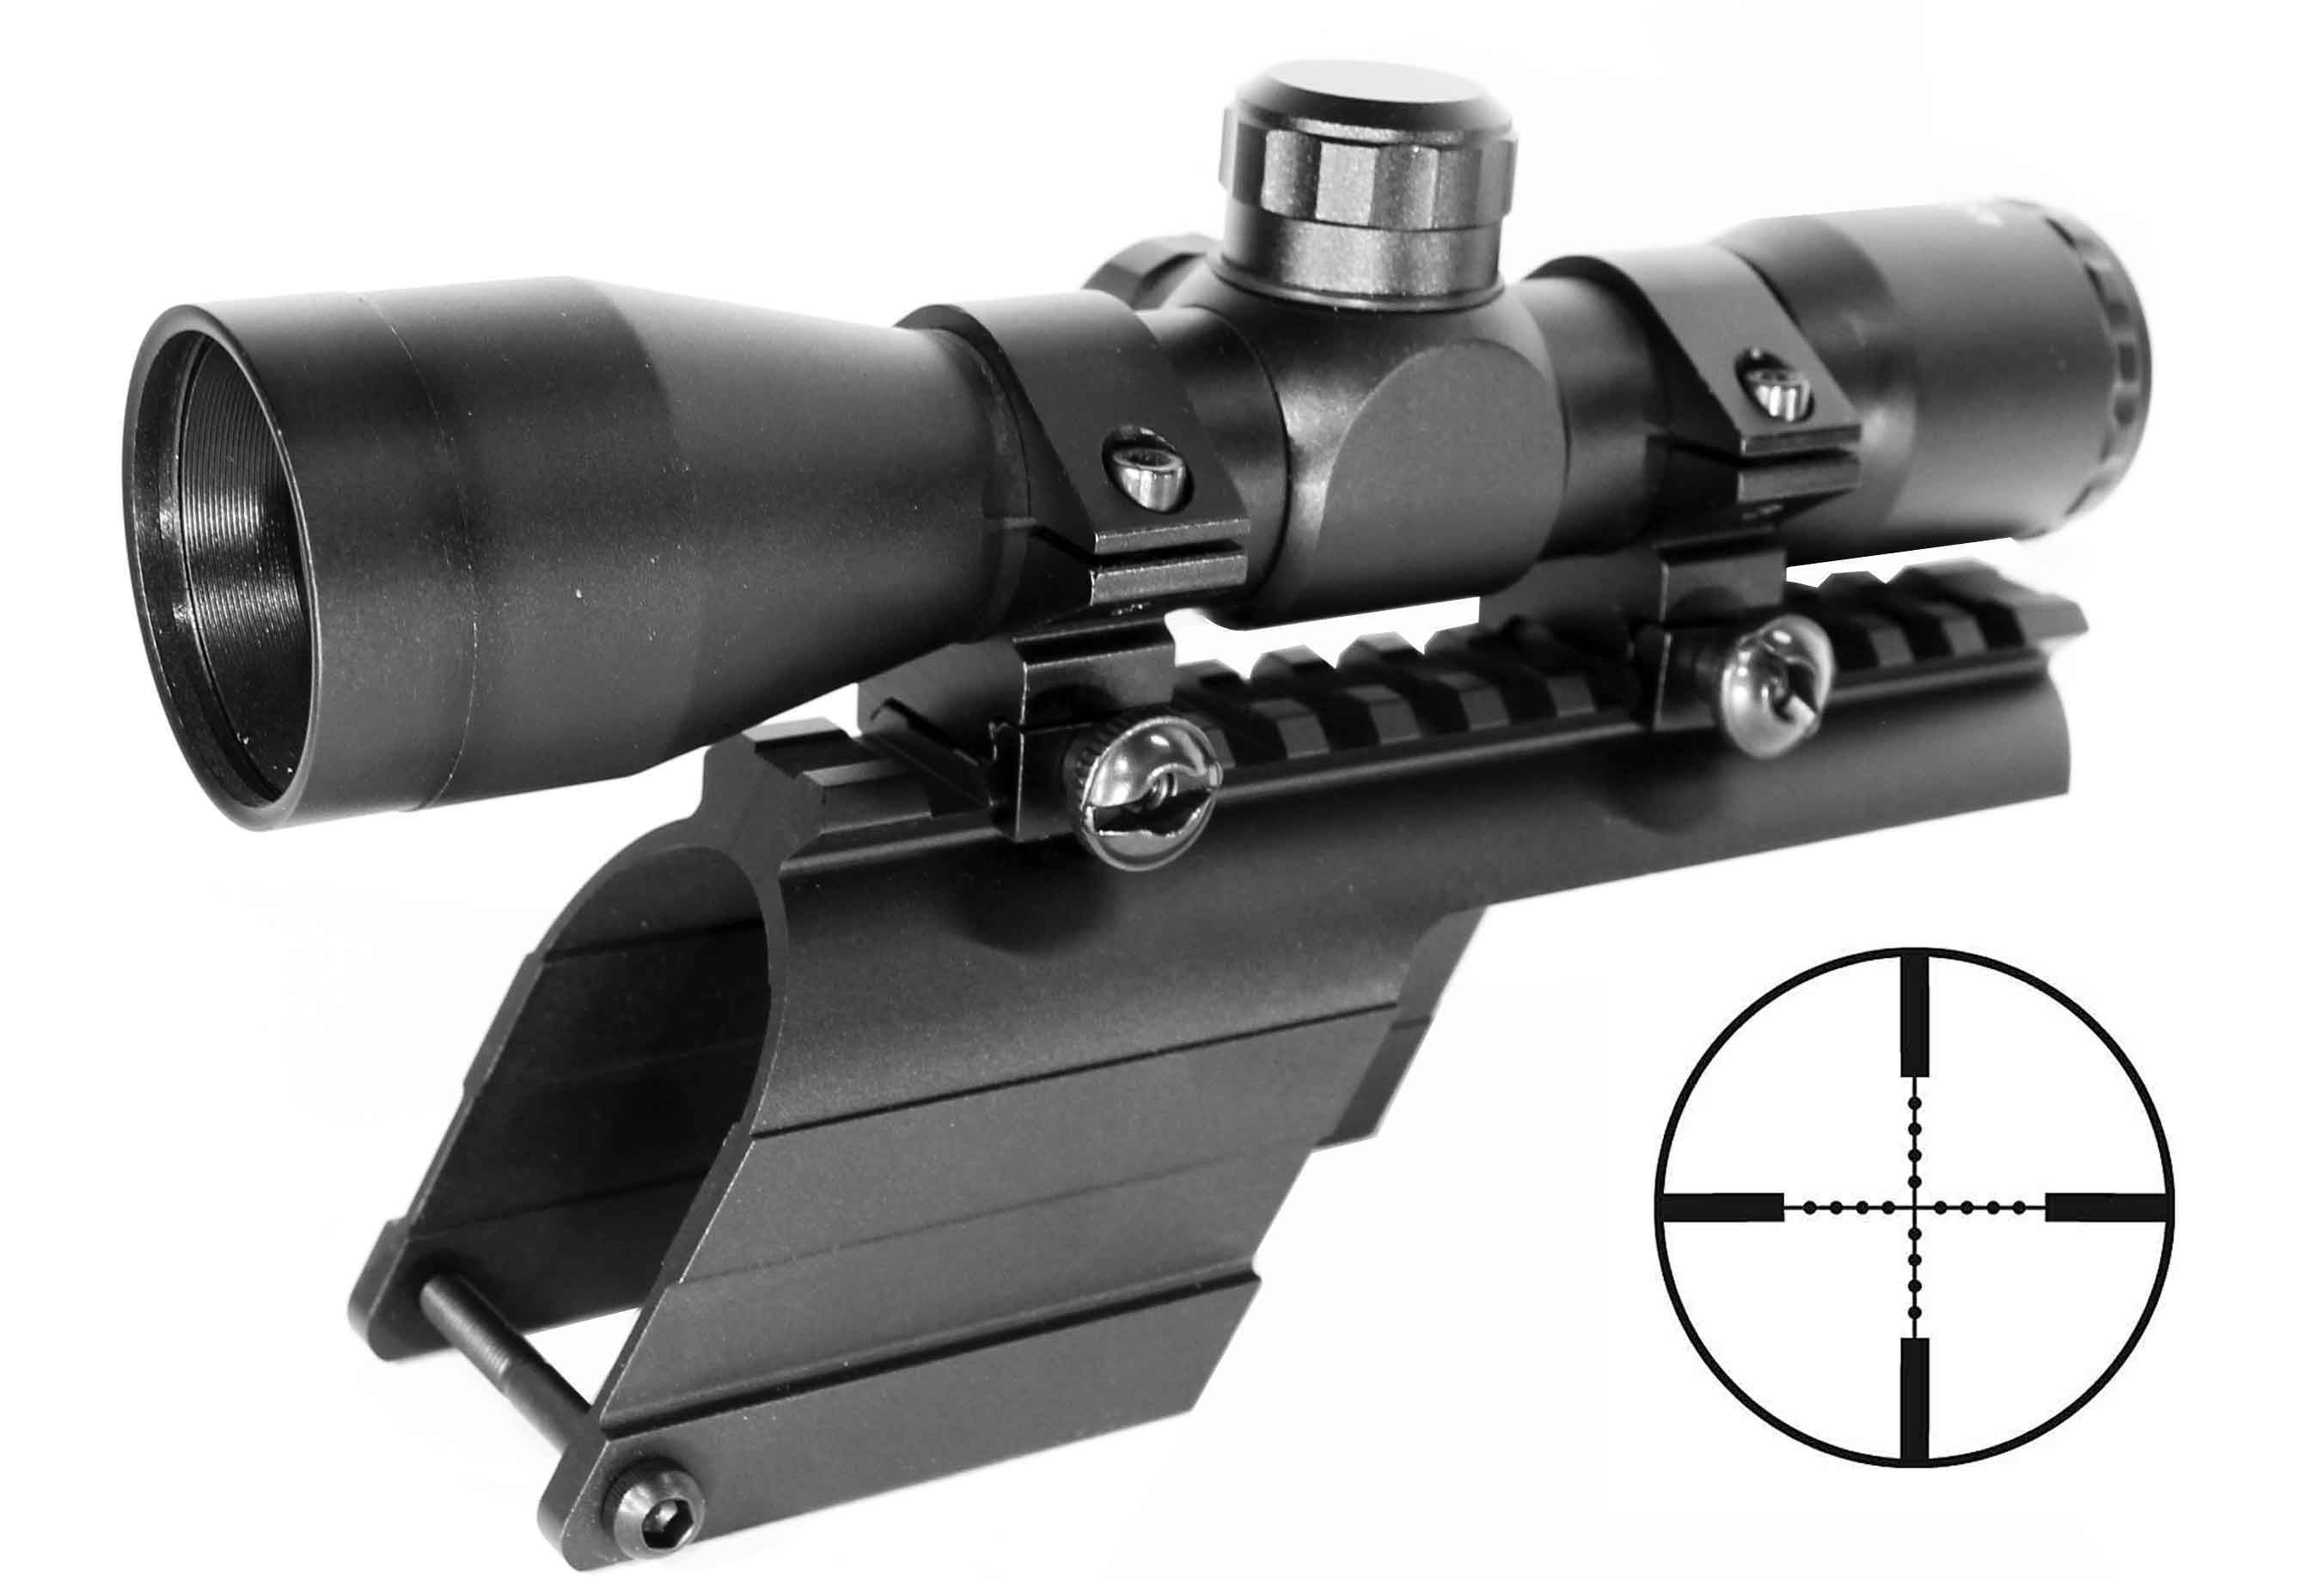 Hunting 4x32 scope and mount kit for Mossberg 500 / Maverick 88 Series  12ga  Shotgun, single rail mount